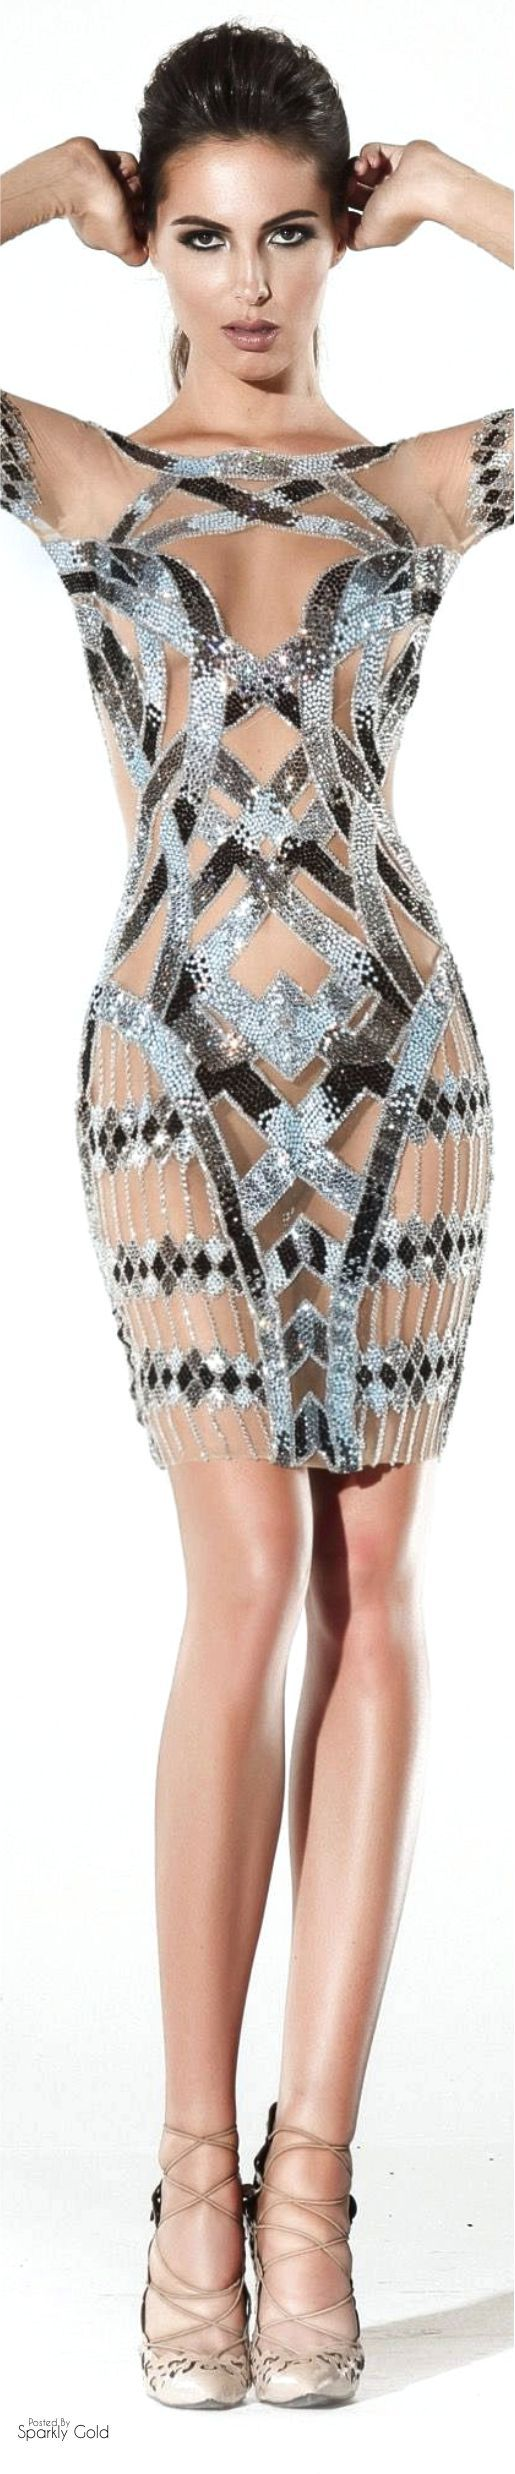 Charbel Zoé Spring 2016 Couture- similarly, this could be recreated by adding a mesh material in between the main pattern of the African fabric to fill in the gaps. (After cutting out the main pattern from the body of the fabric)